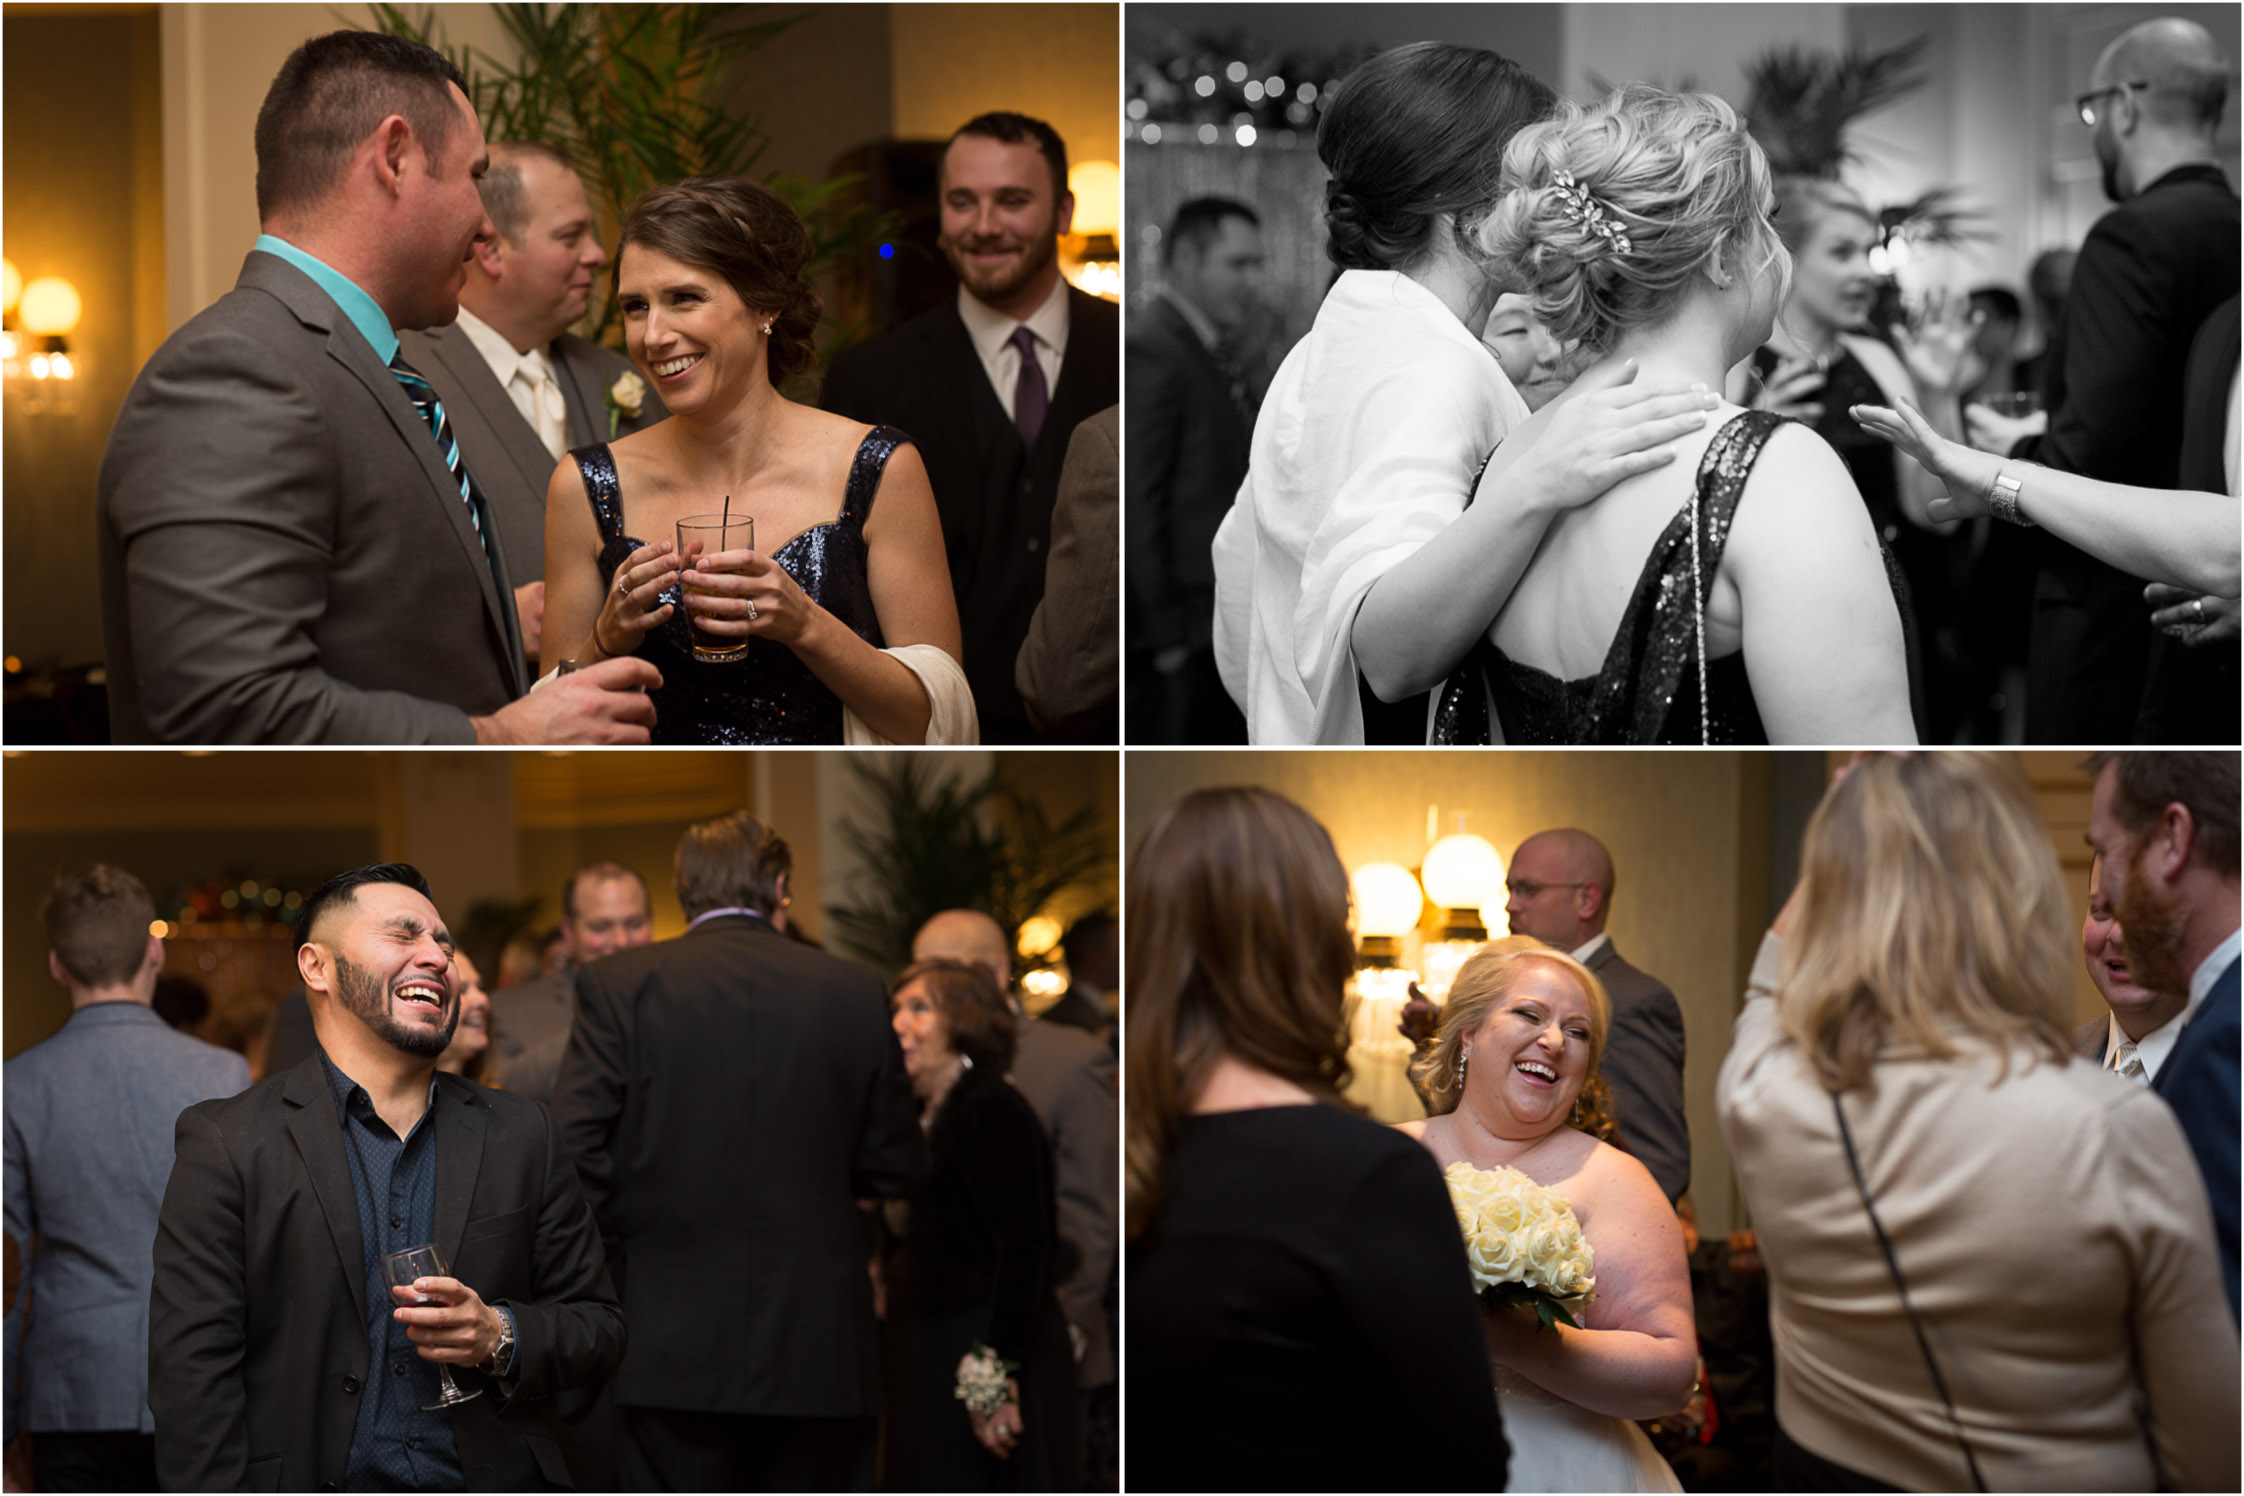 14-new-years-eve-wedding-reception-cocktail-hour-fun-mahonen-photography.jpg